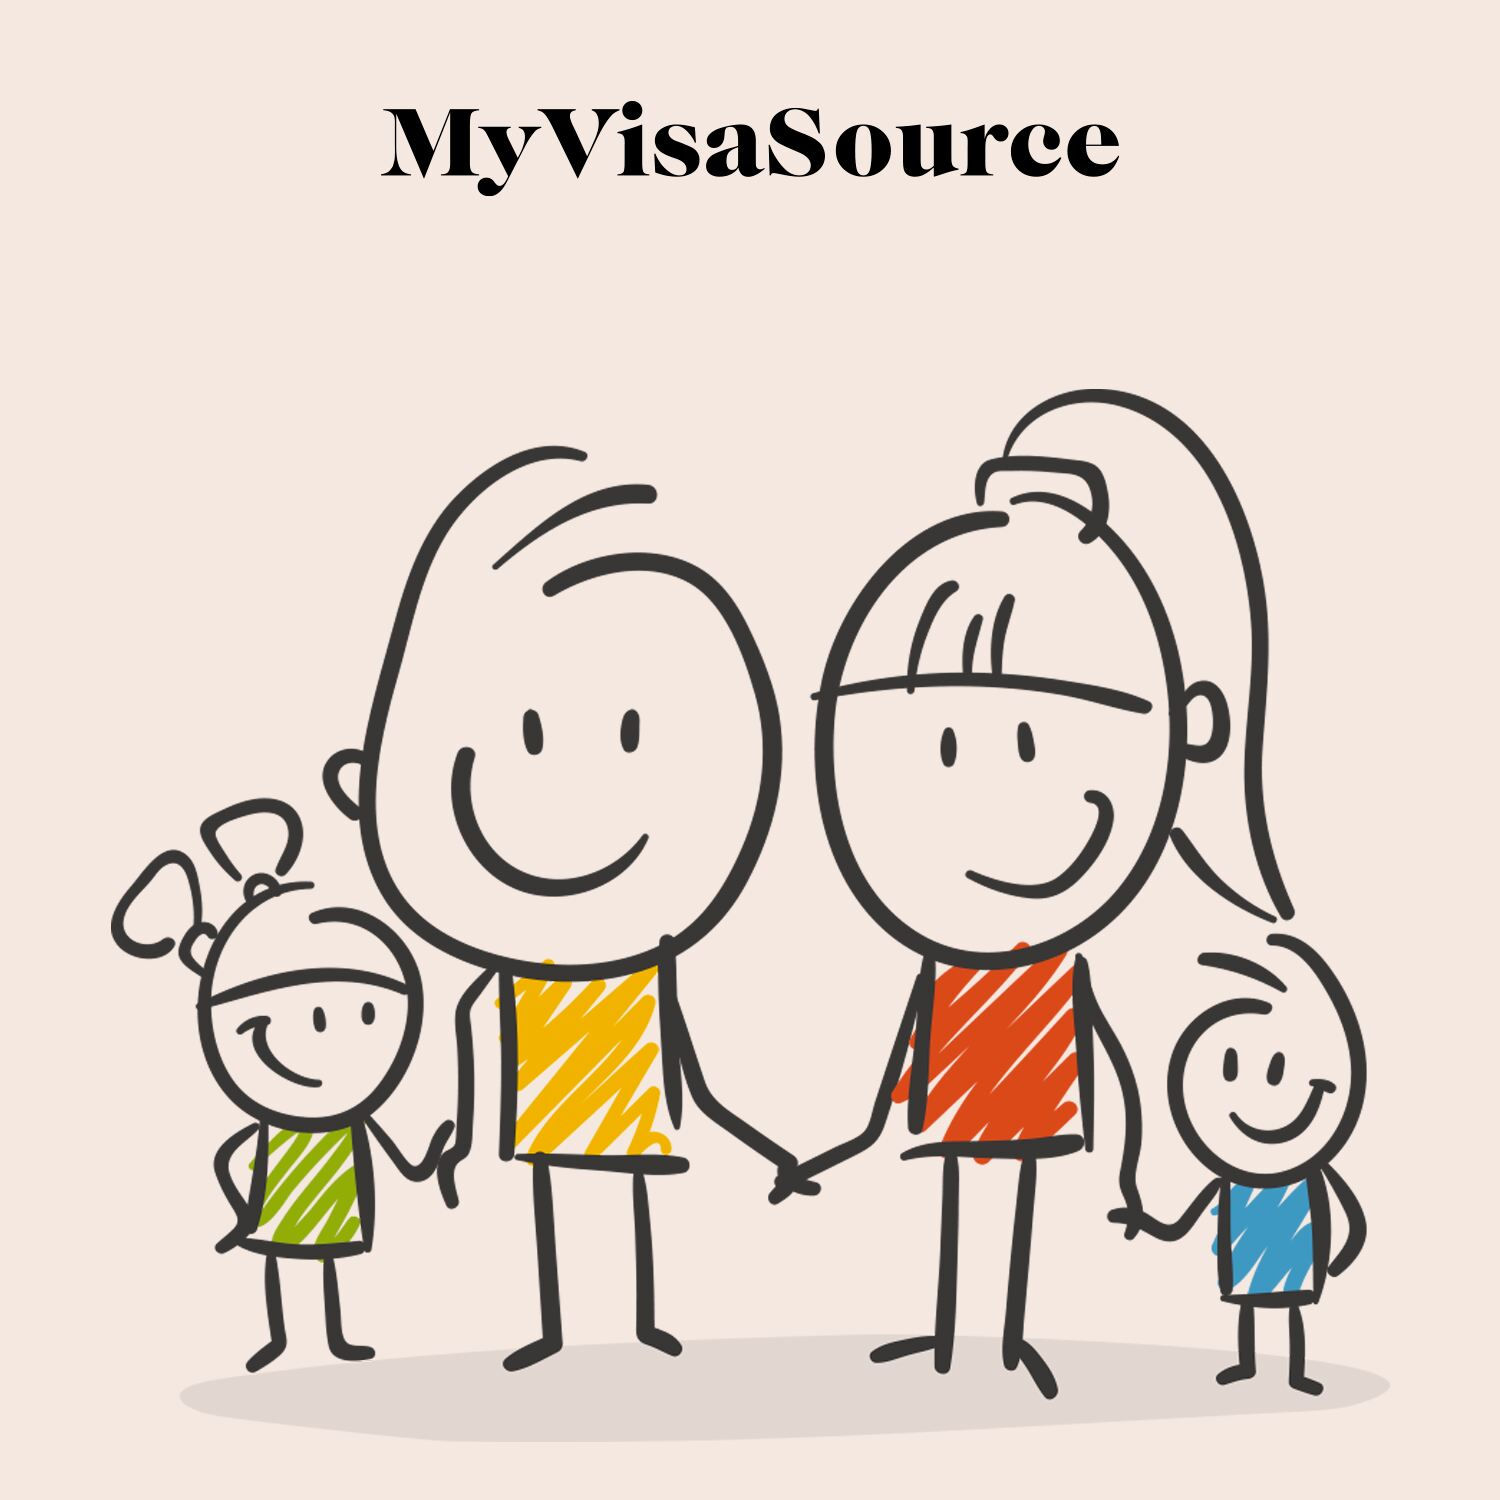 cartoon-drawing-of-a-happy-family-my-visa-source-200kb